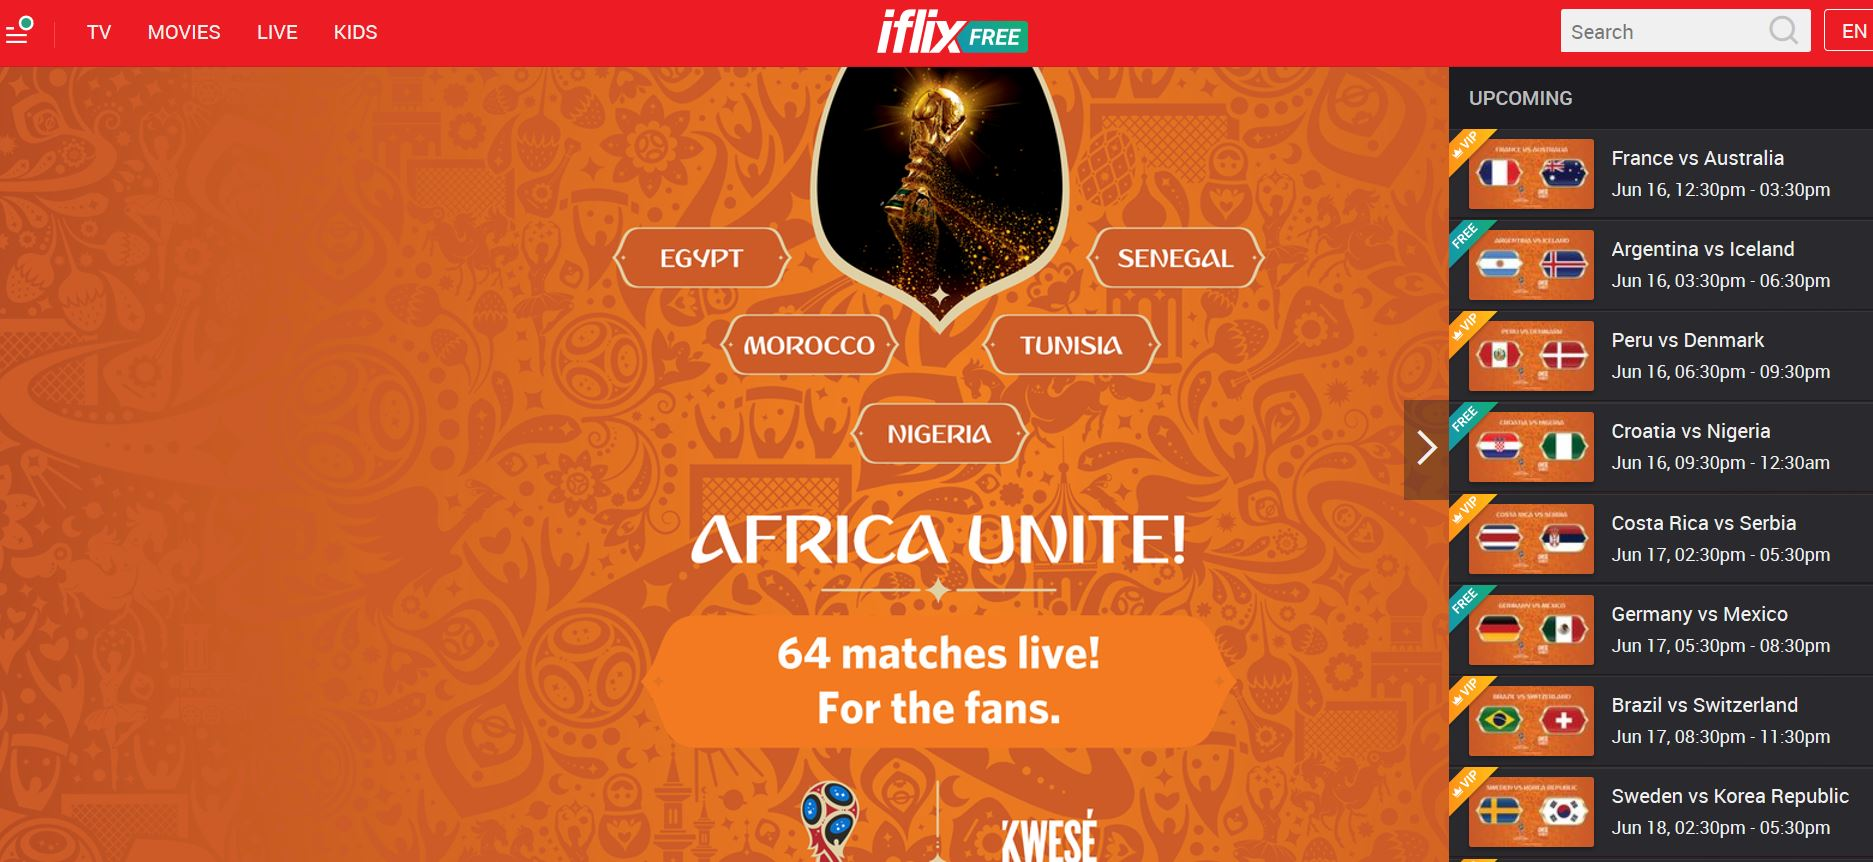 ow How to watch all 2018 World Cup matches in Kenya through Kwese Iflix Live